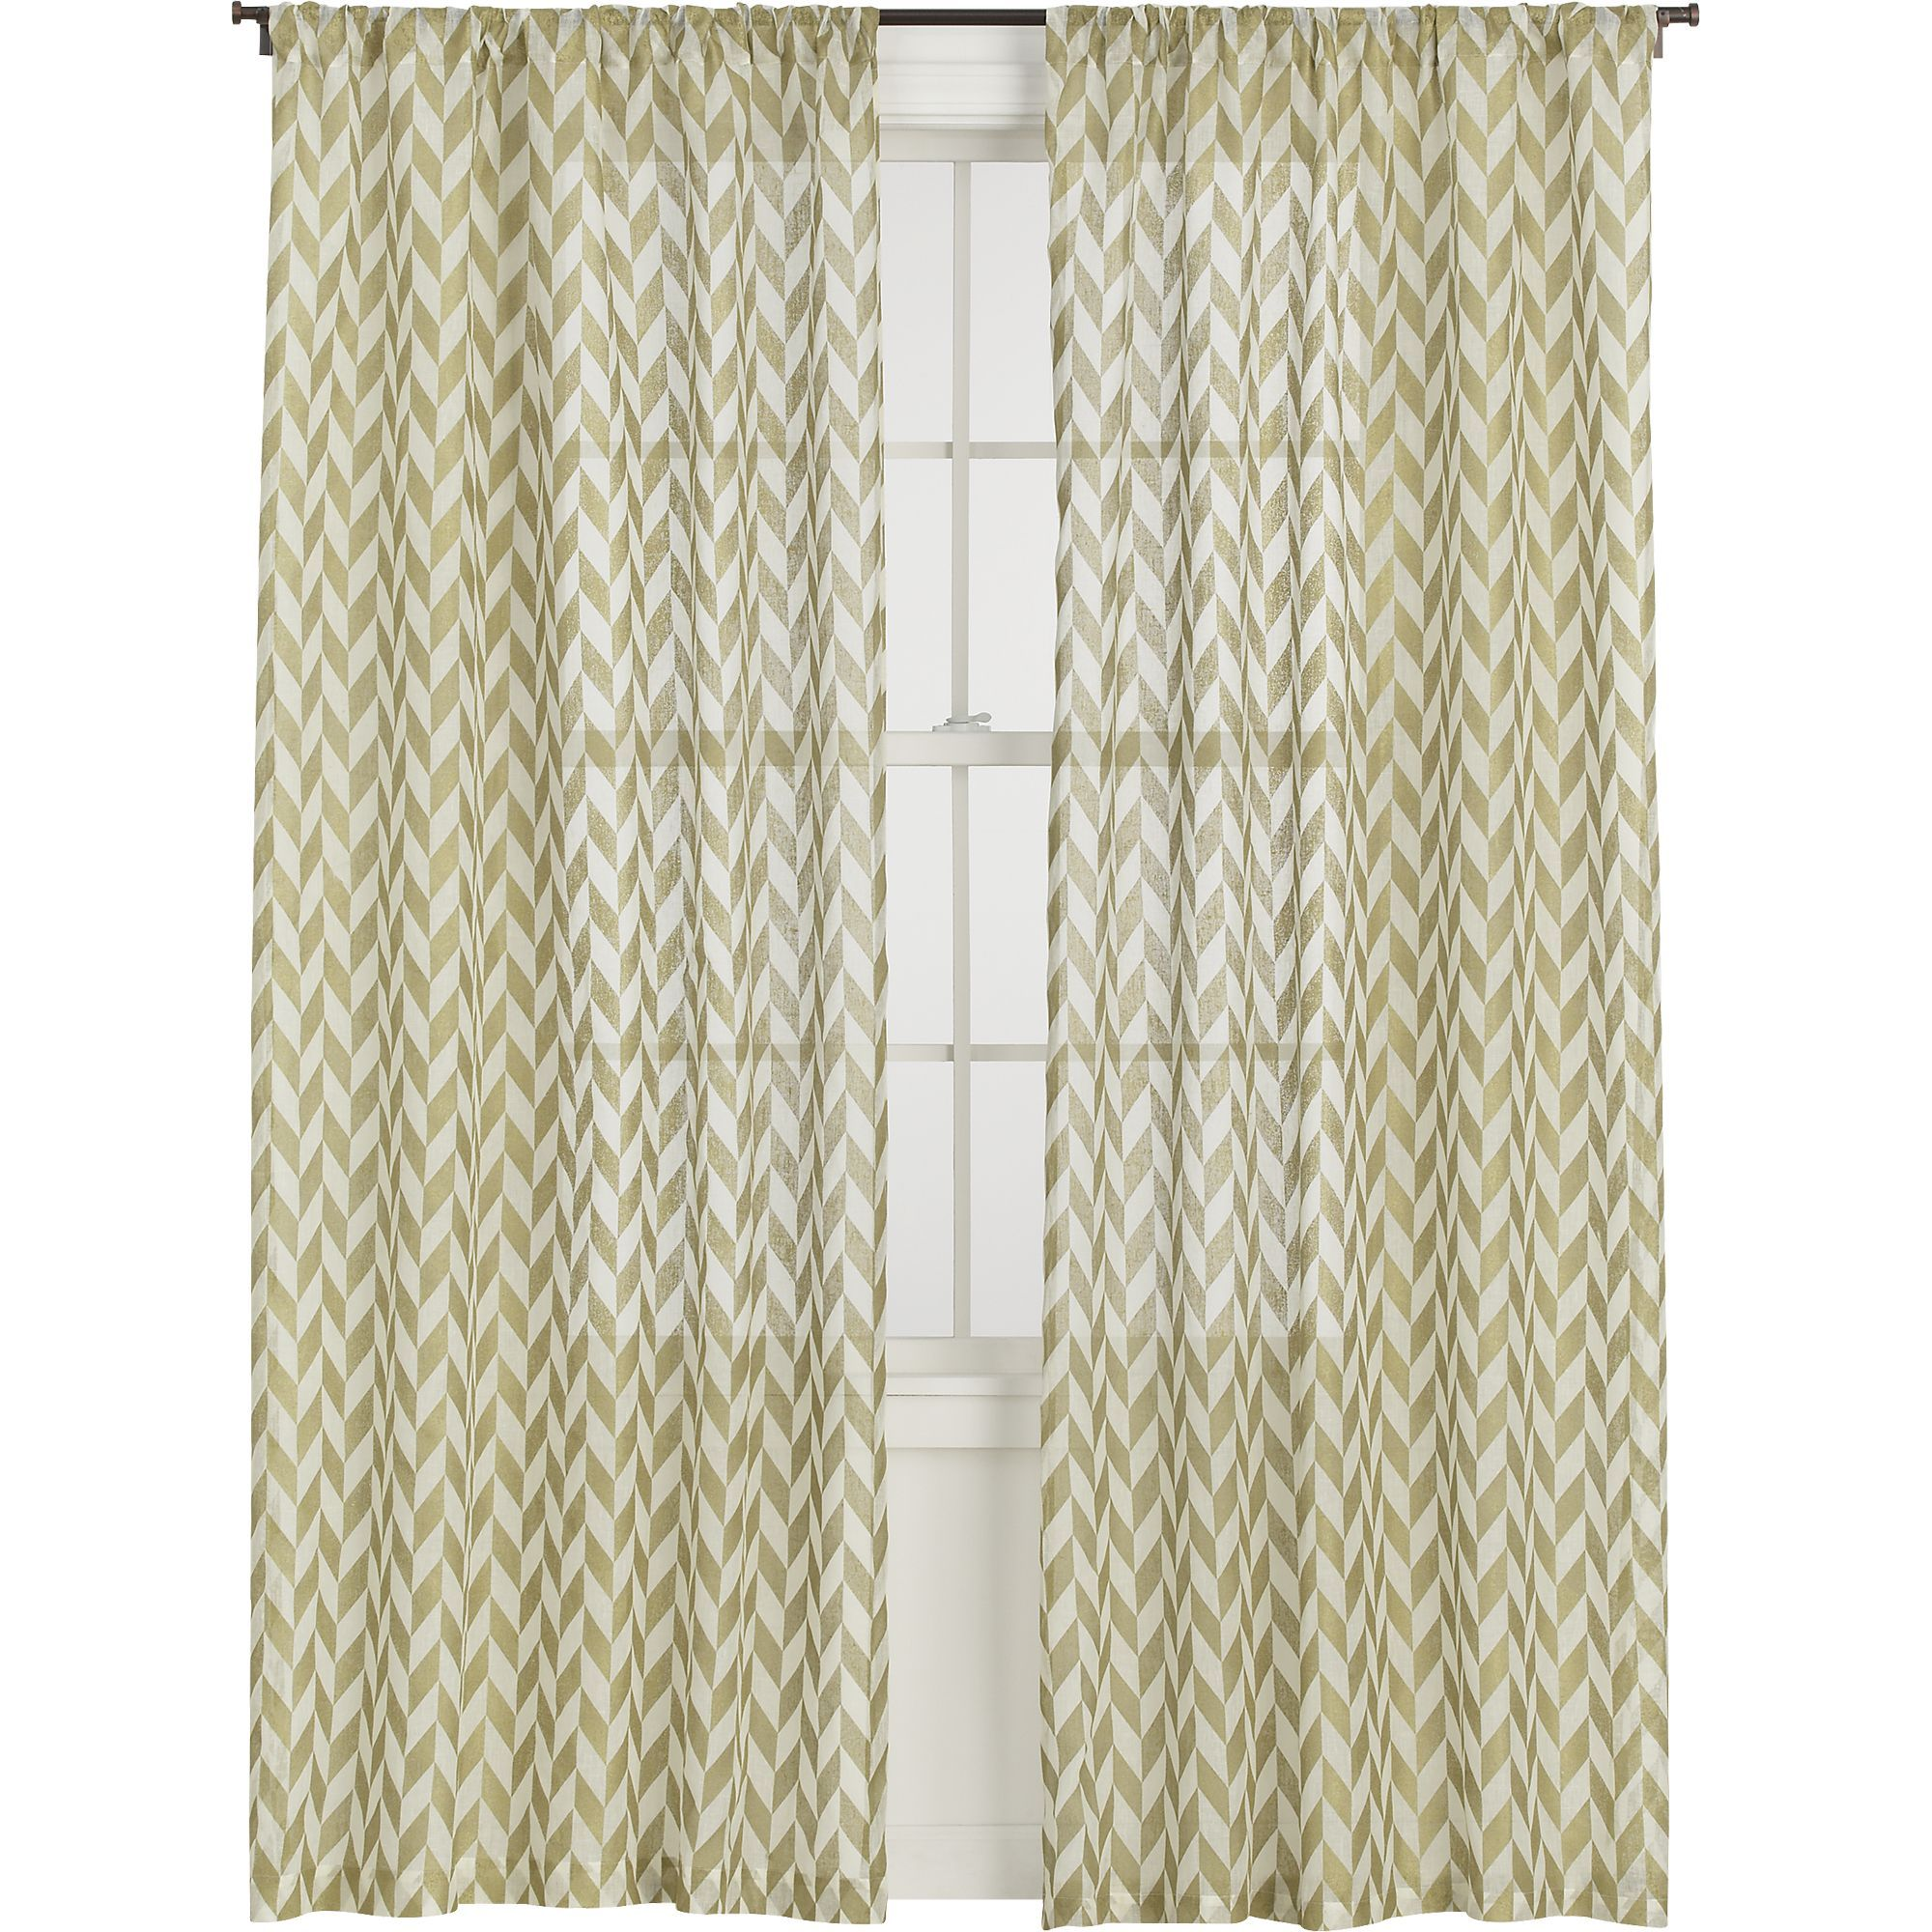 Herringbone Gold Sheer Curtain Panels in Curtains | Crate and Barrel,  metallic gold for the